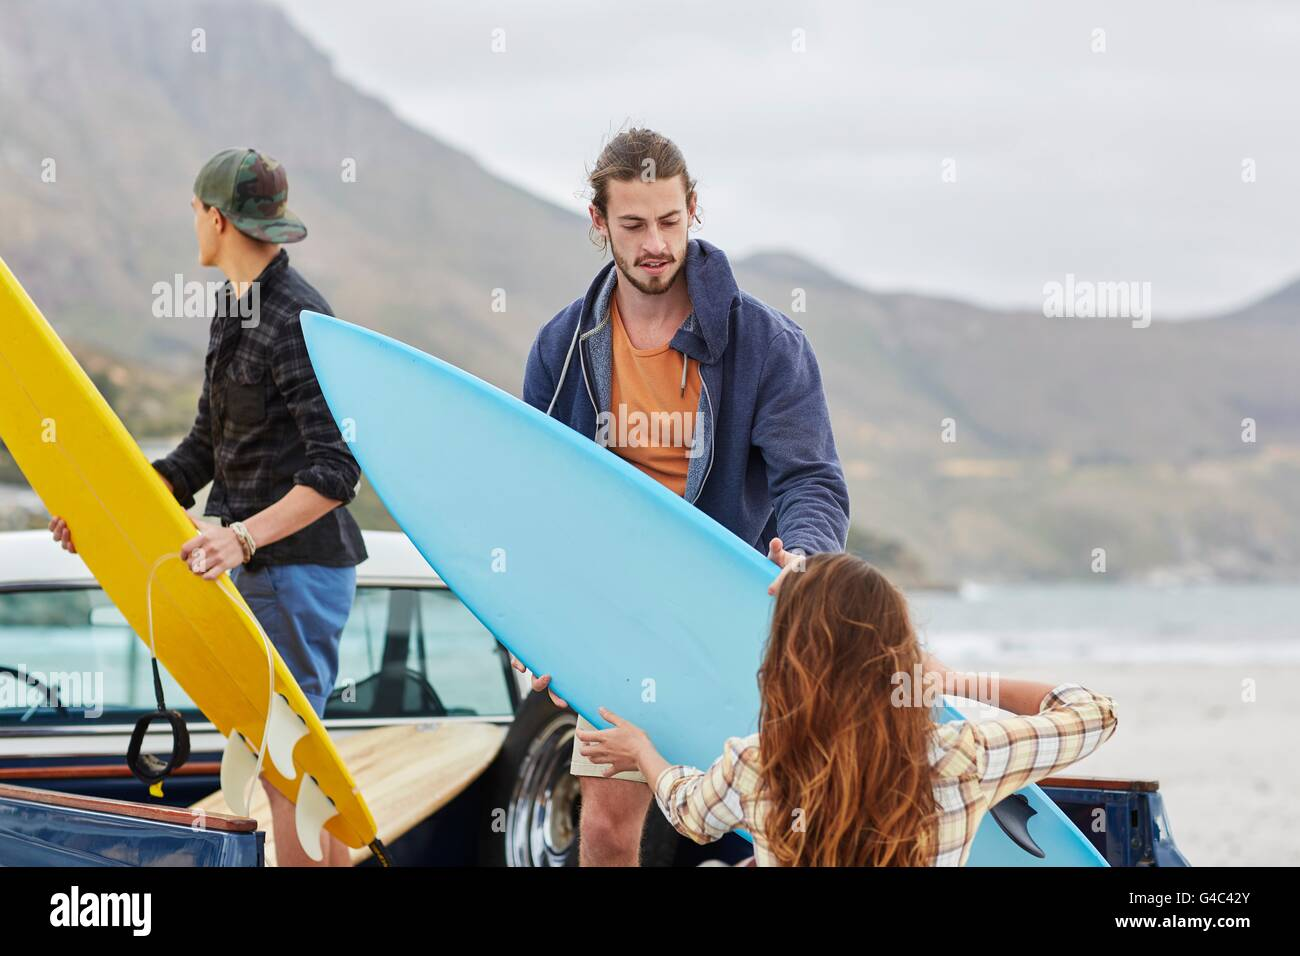 MODEL RELEASED. Young woman handing surfboard to man. - Stock Image